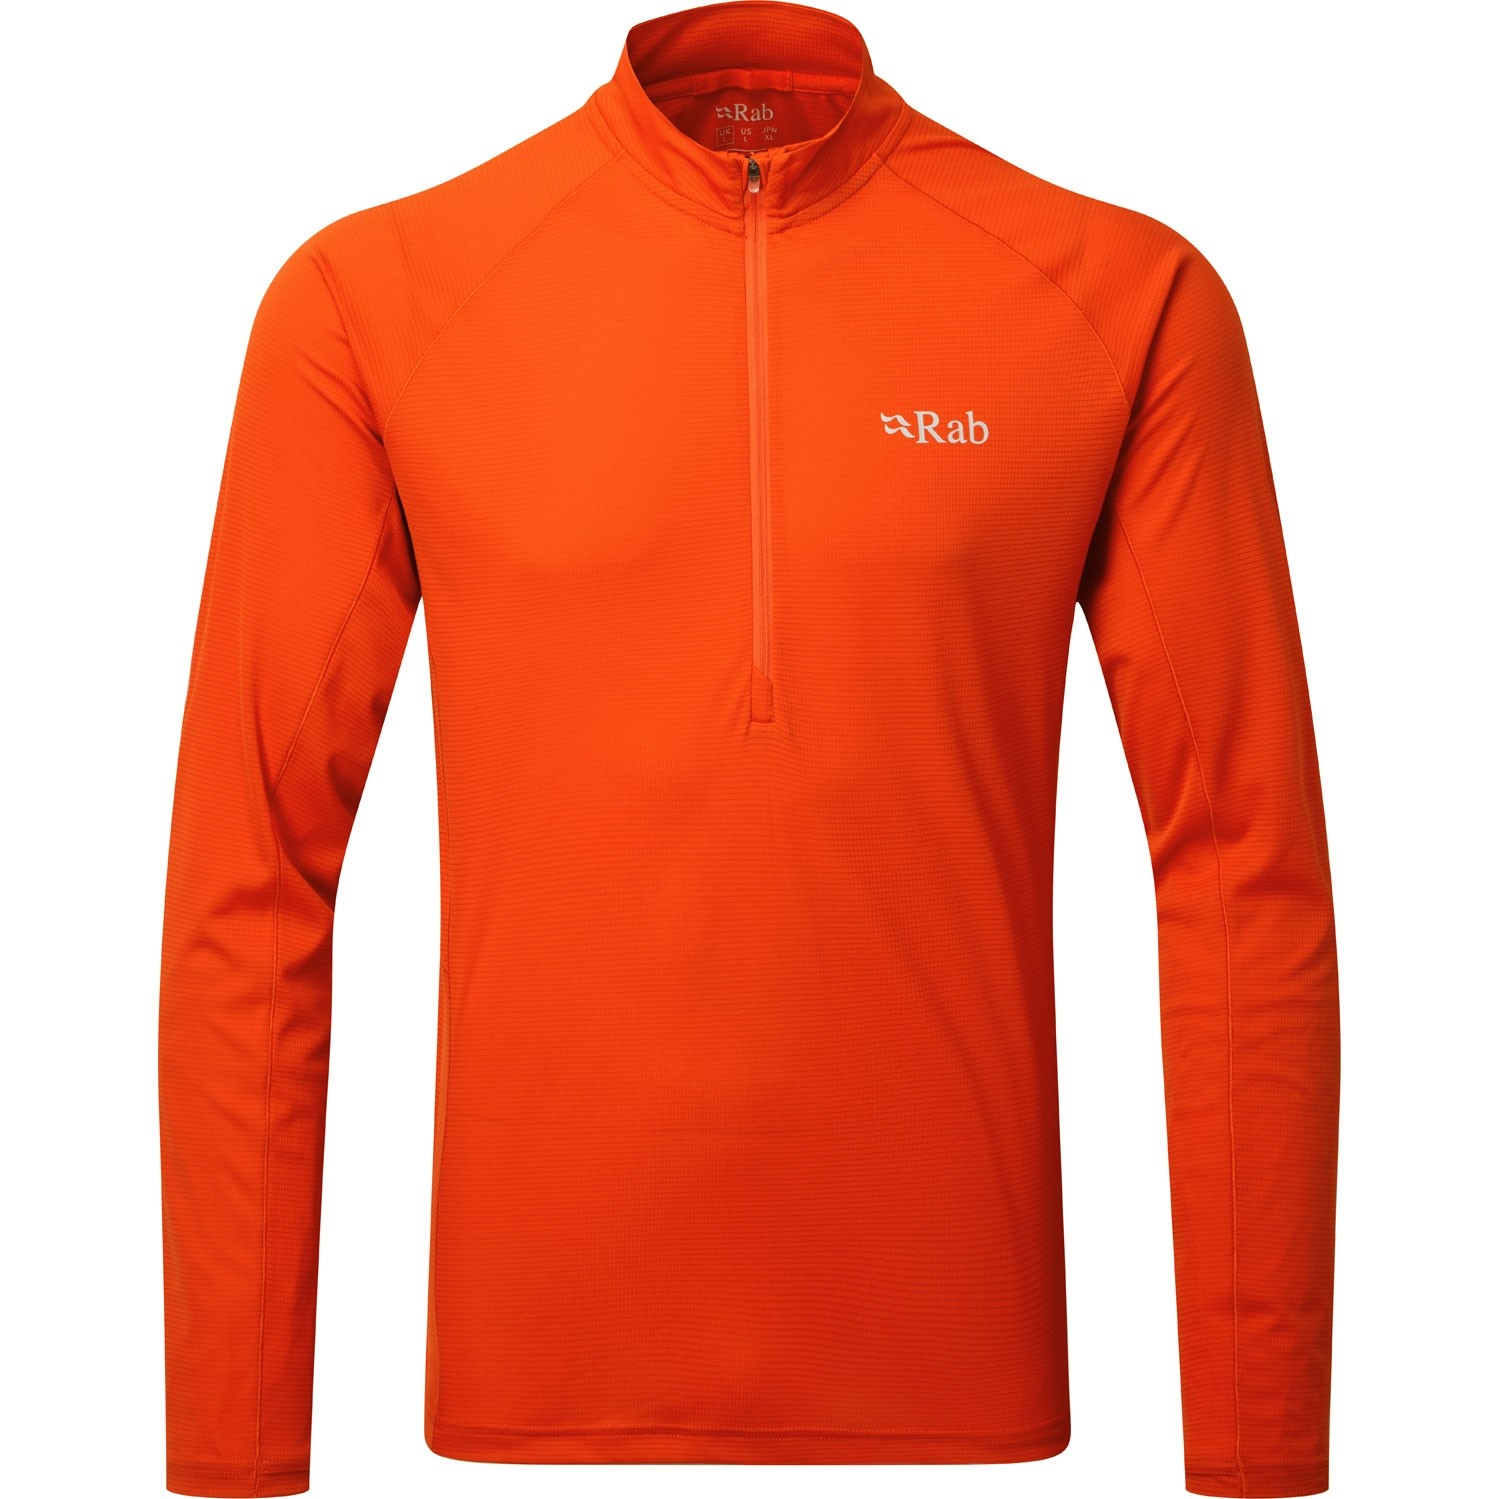 Rab Pulse Long Sleeve Zip Men's Baselayer - Firecracker